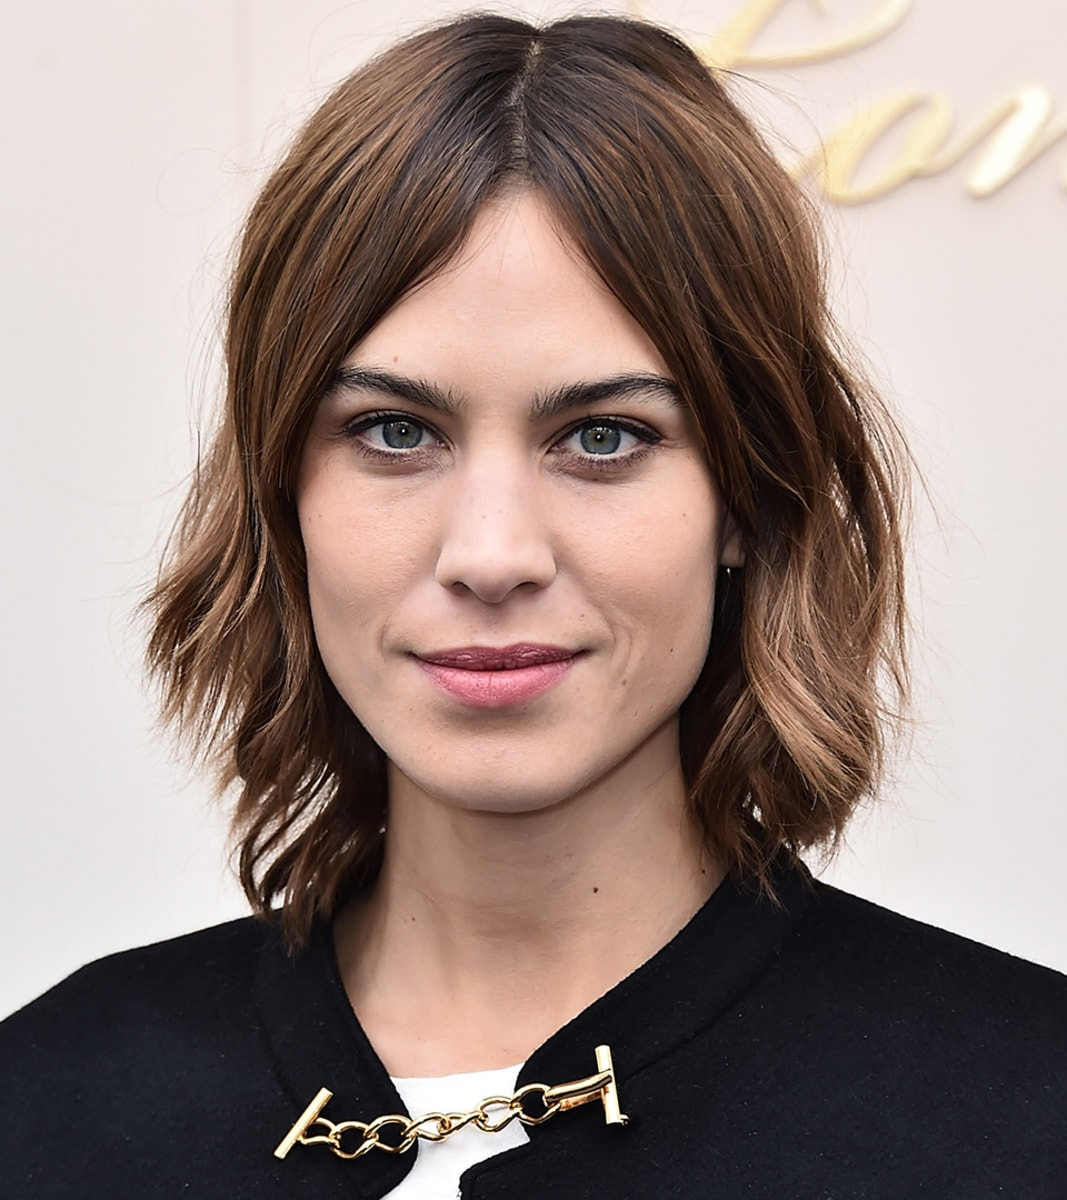 Todays Hair Styles : Jenna Dewan Tatum debuts shag haircut with bangs - TODAY.com